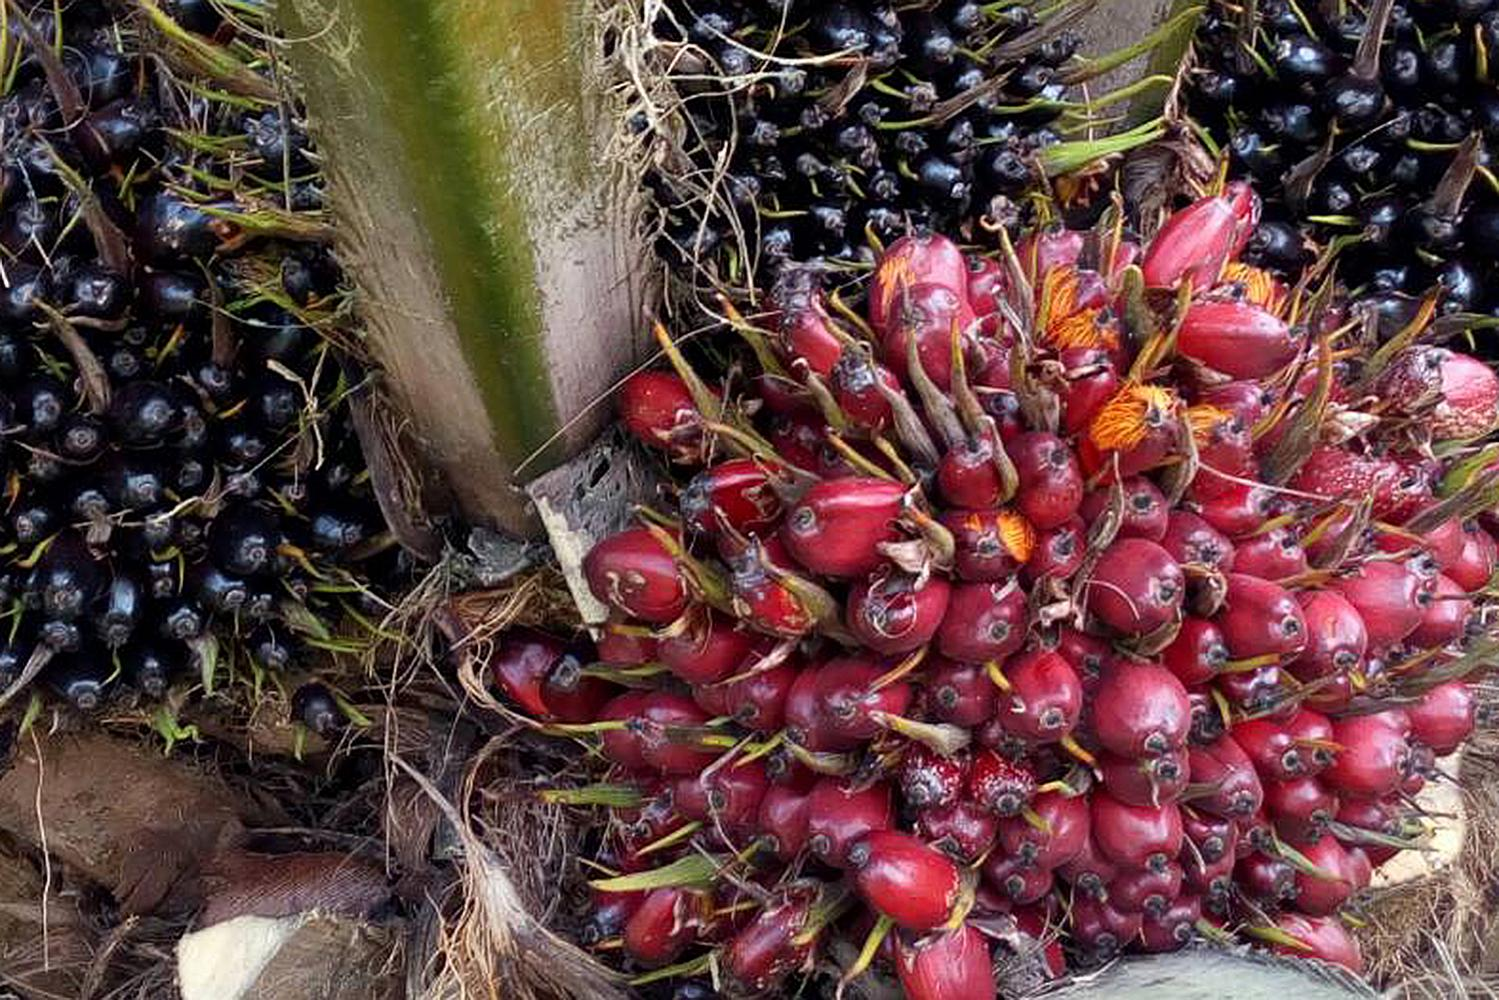 Oil palm farmers ask for retailer help